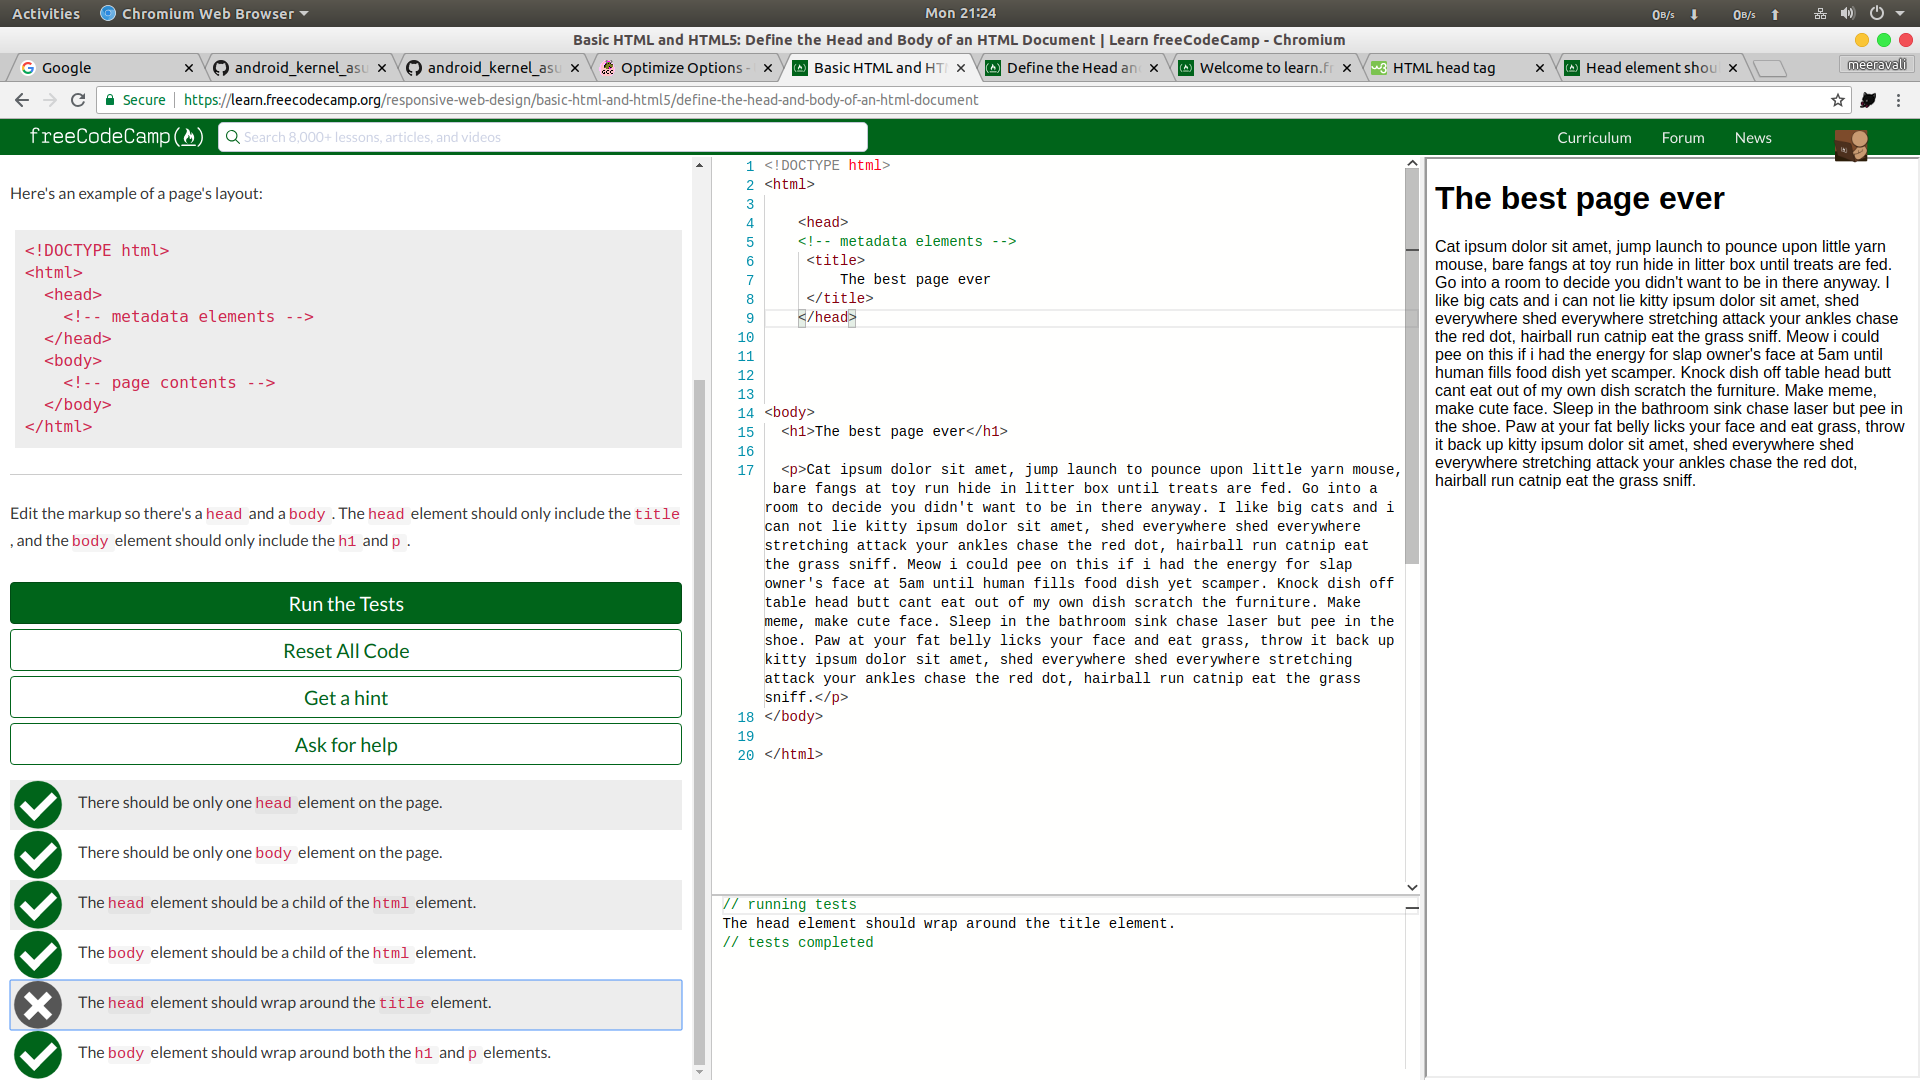 basic html and html5 define the head and body of an html document